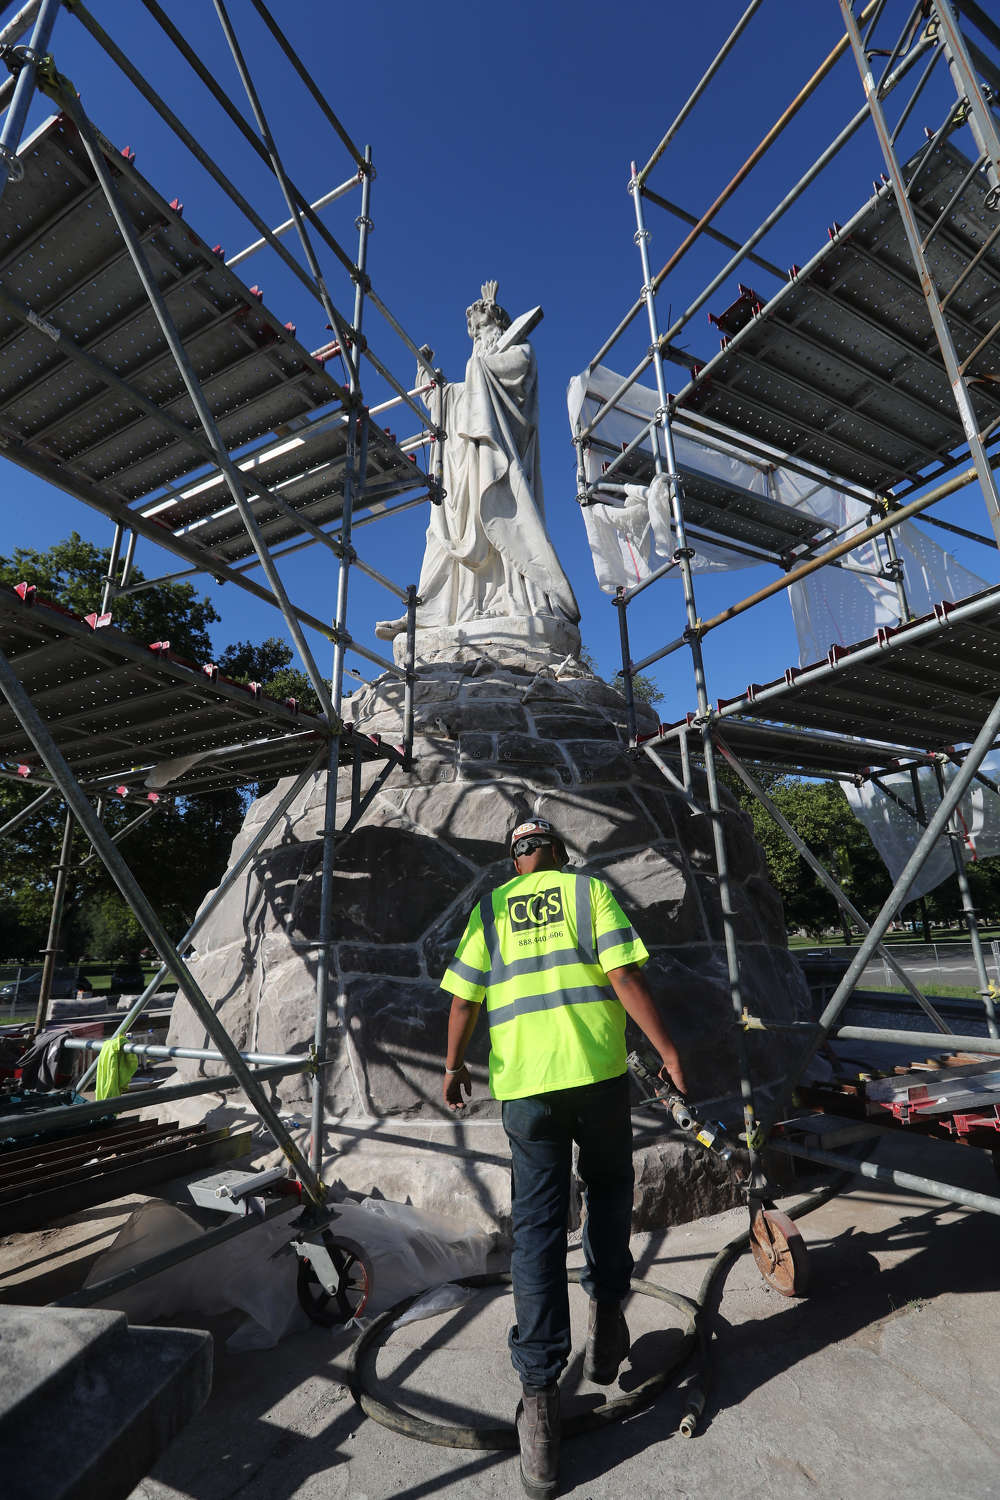 Workers injected high-mobility grout under low pressure at ground level and on scaffolding to access the towering statues.